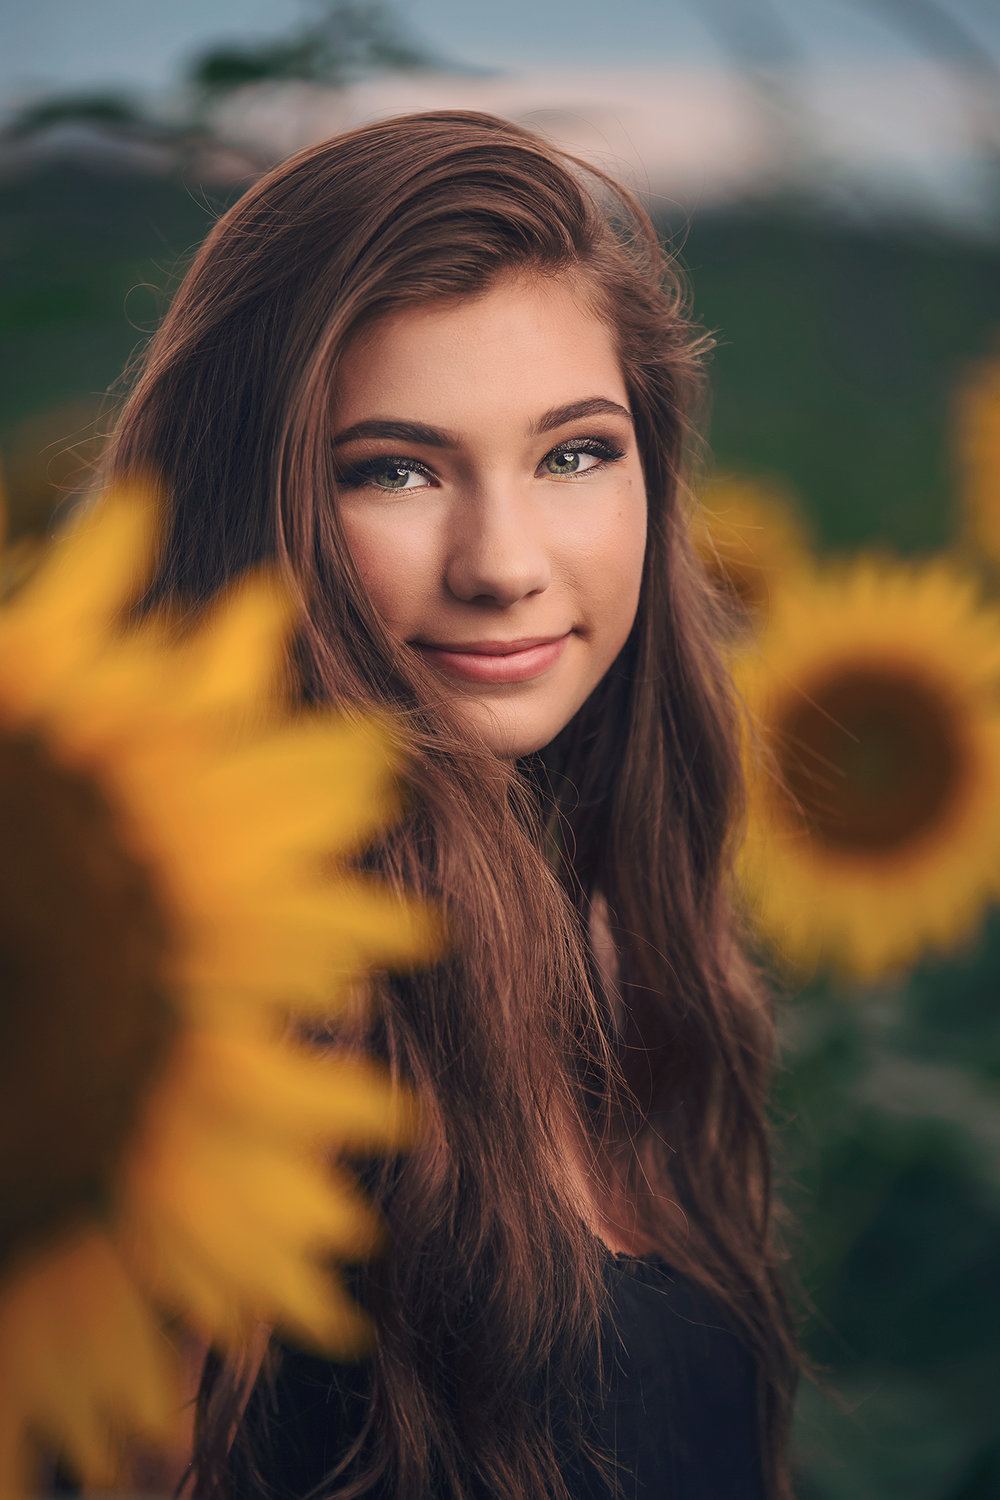 Sunflowers-27.jpg